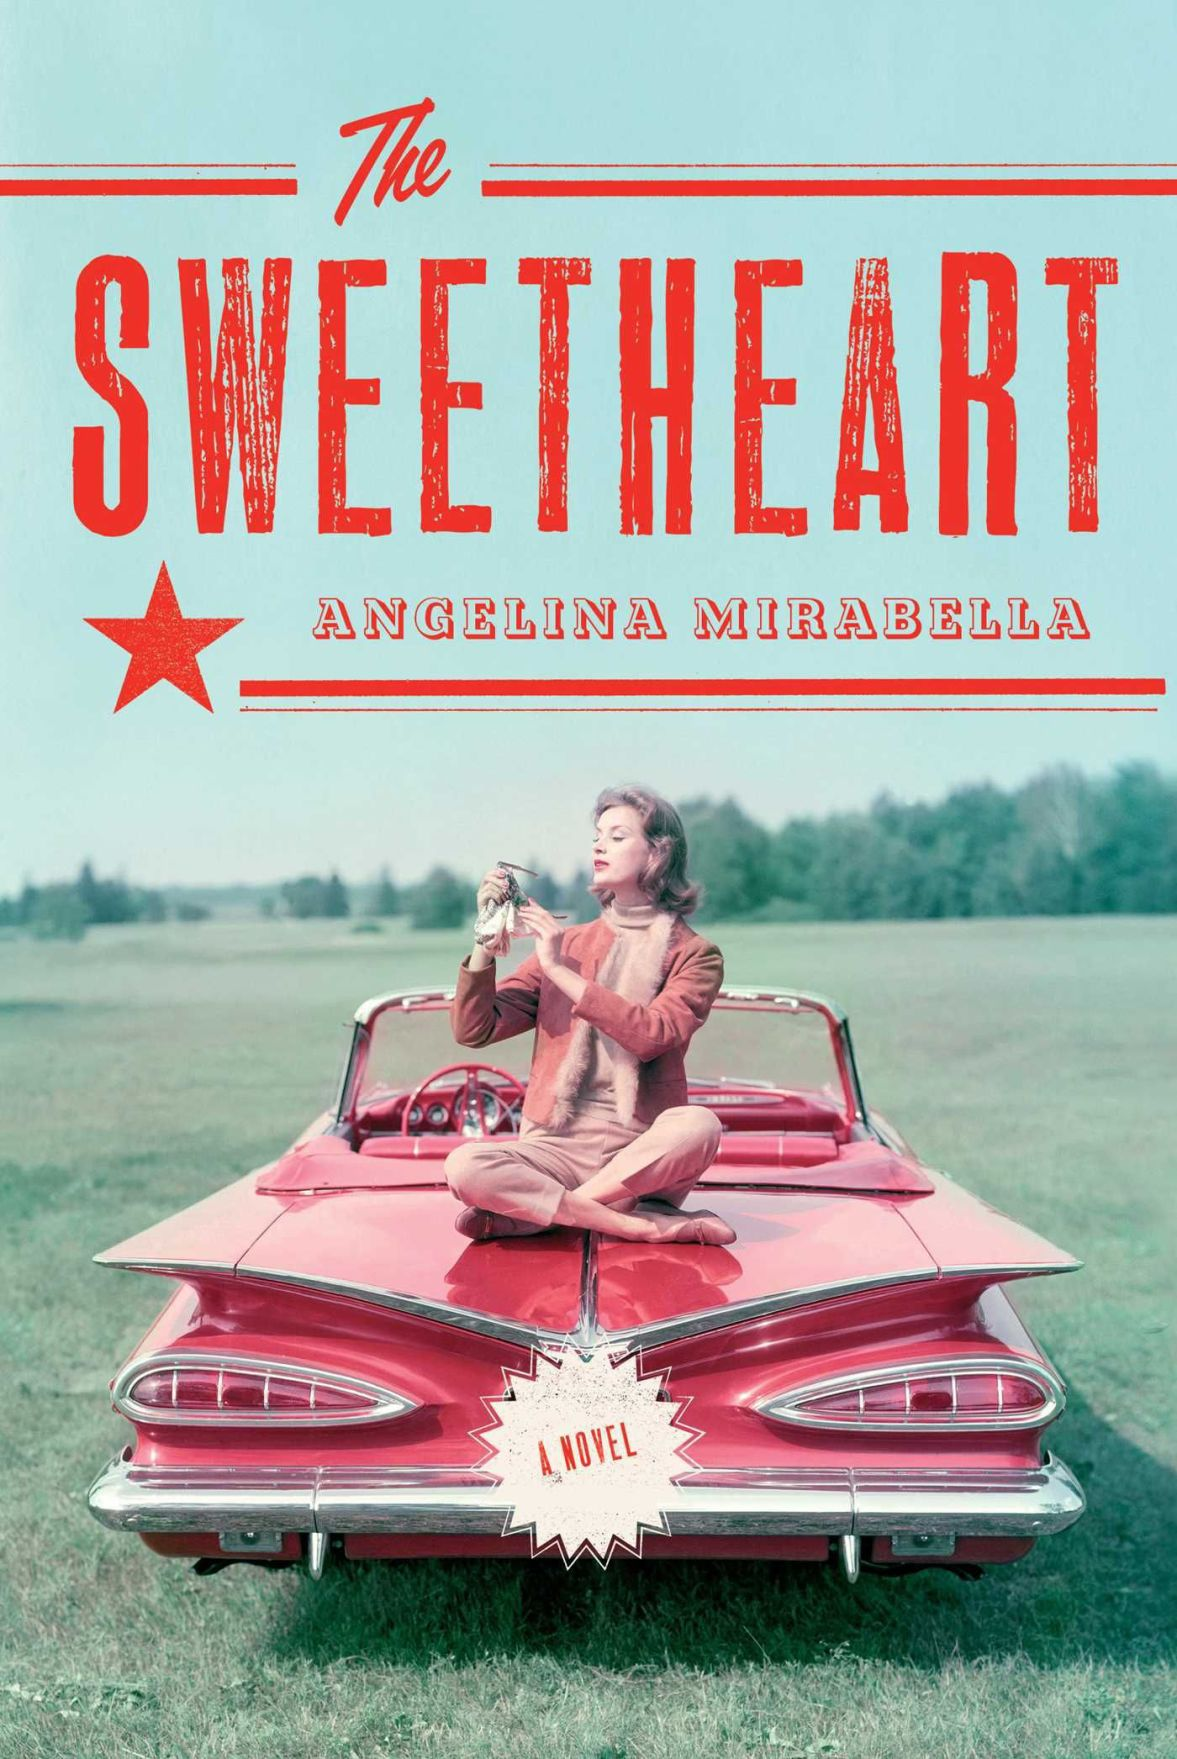 'The Sweetheart' delivers a punch